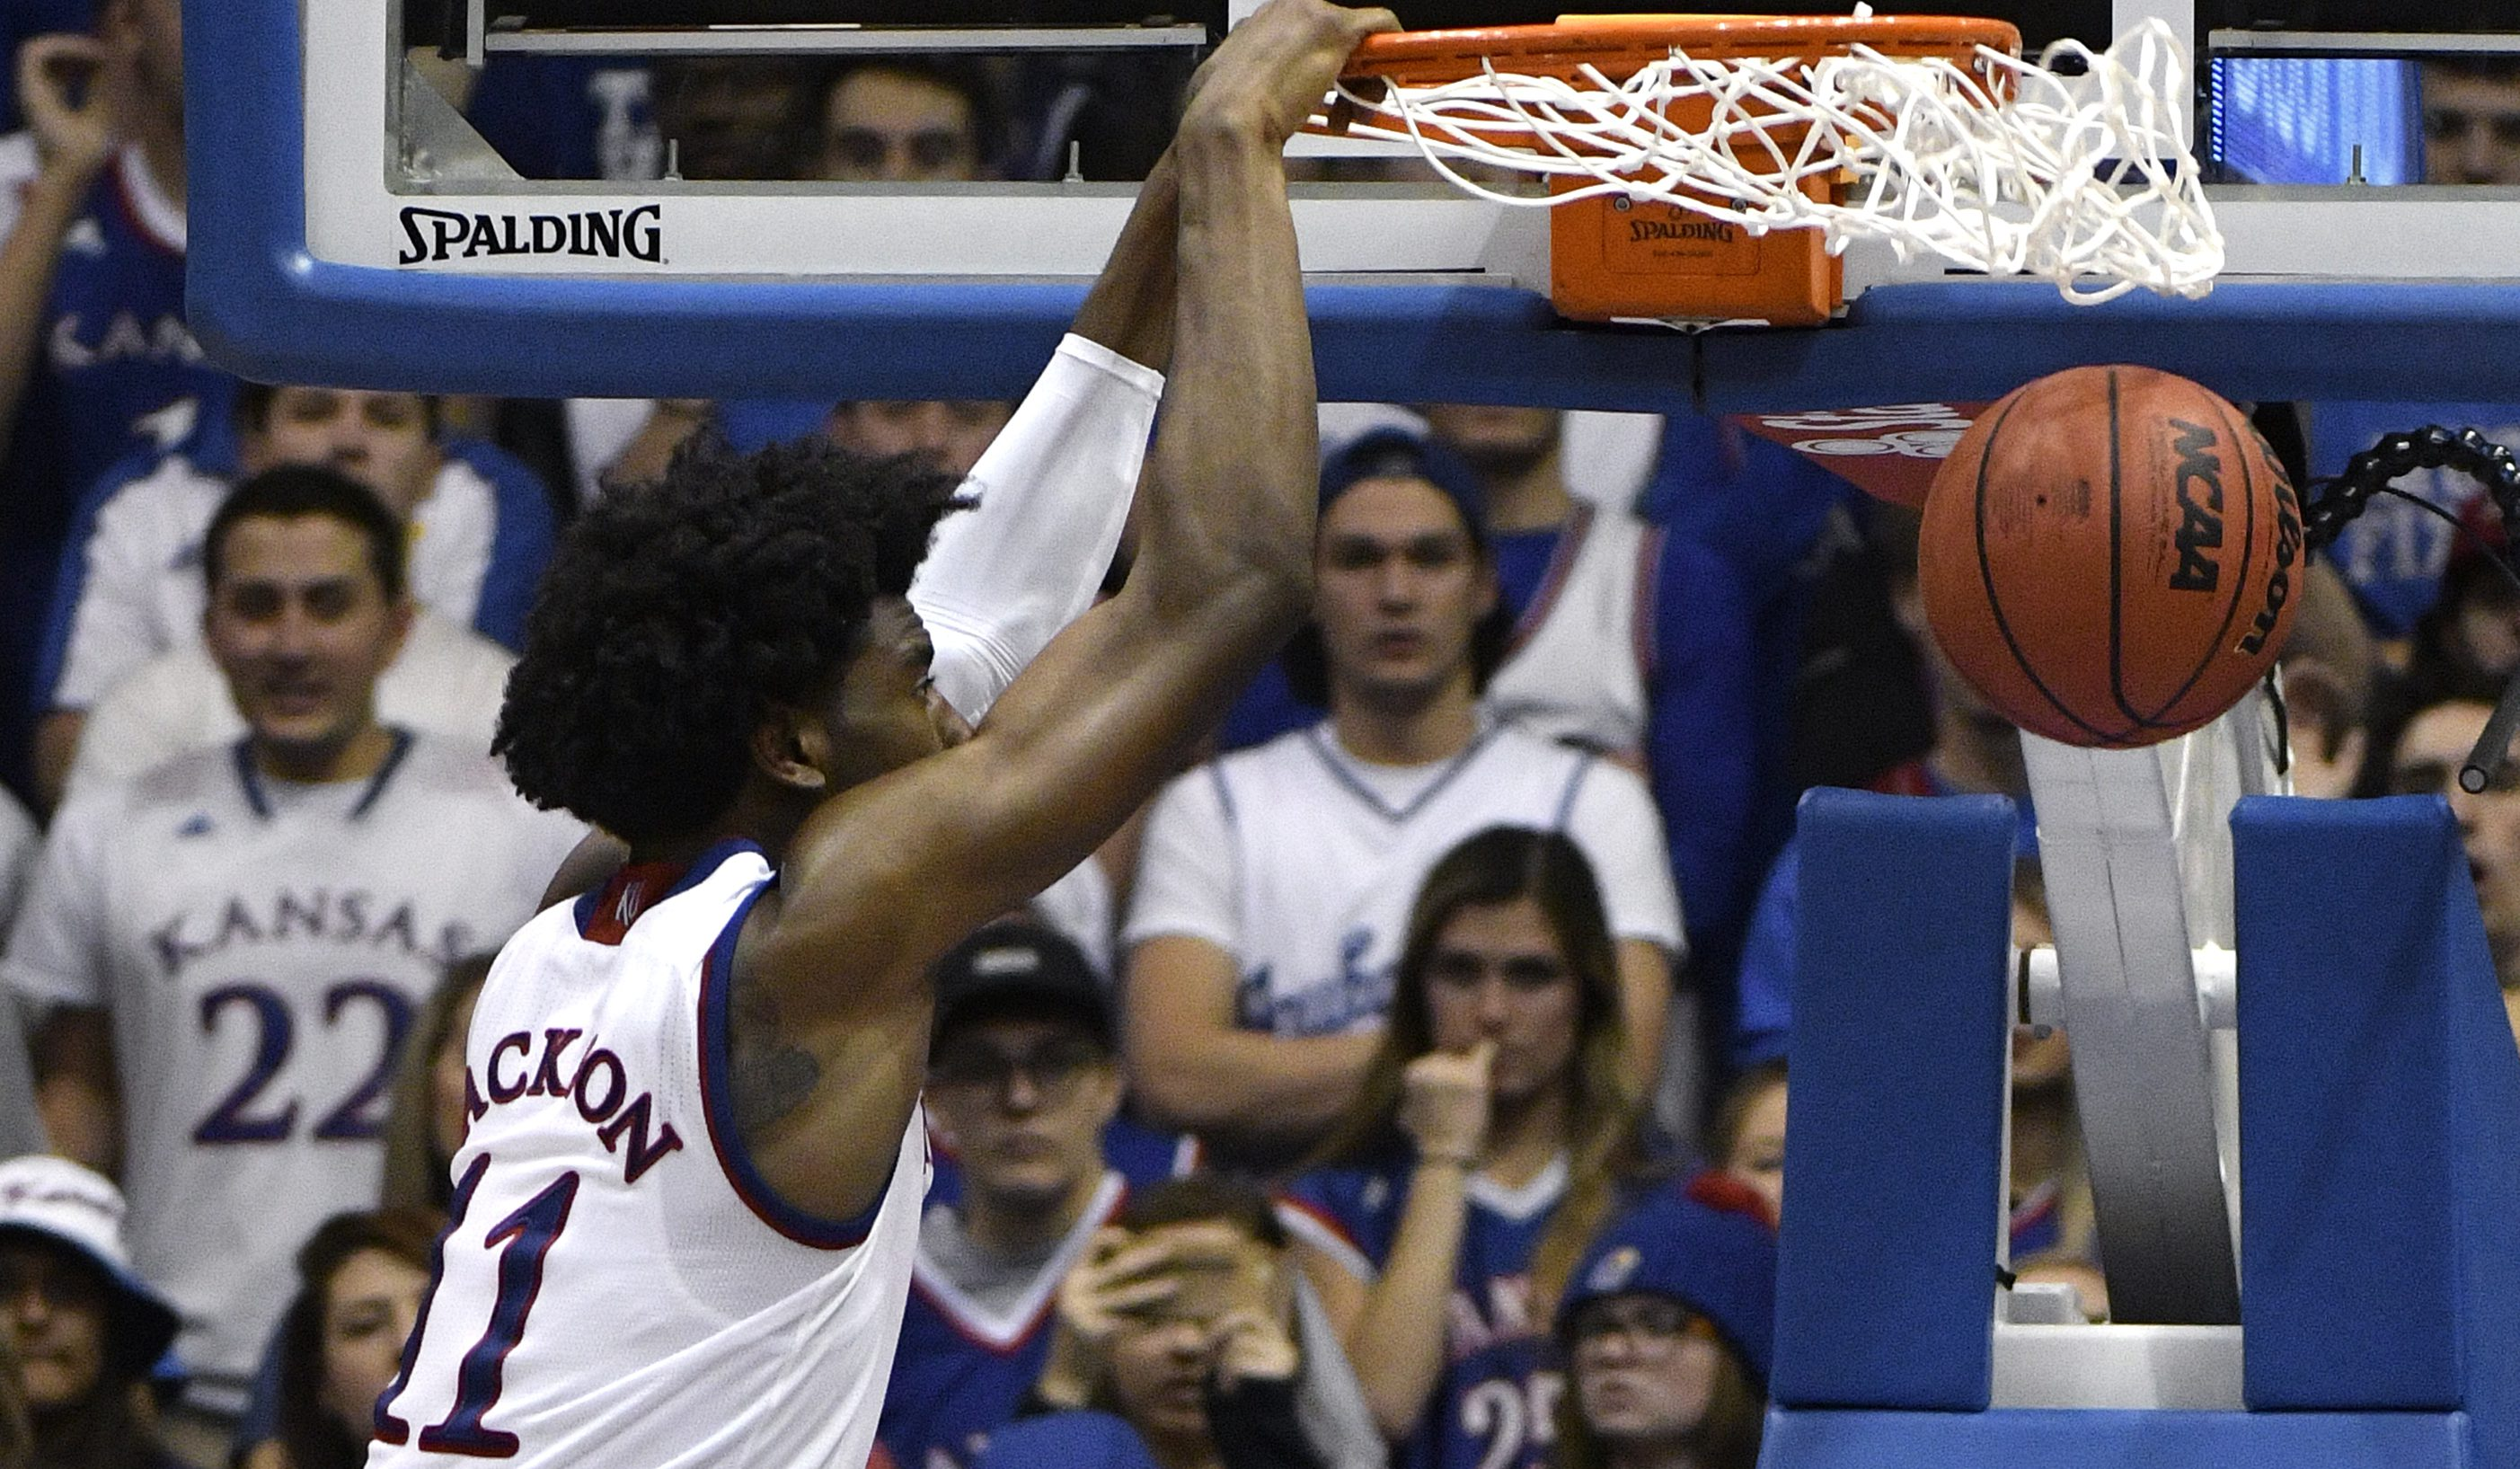 LAWRENCE, KS - DECEMBER 10: Josh Jackson #11 of the Kansas Jayhawks dunks he ball against the Nebraska Cornhuskers in the second half at Allen Field House on December 10, 2016 in Lawrence, Kansas. (Photo by Ed Zurga/Getty Images)